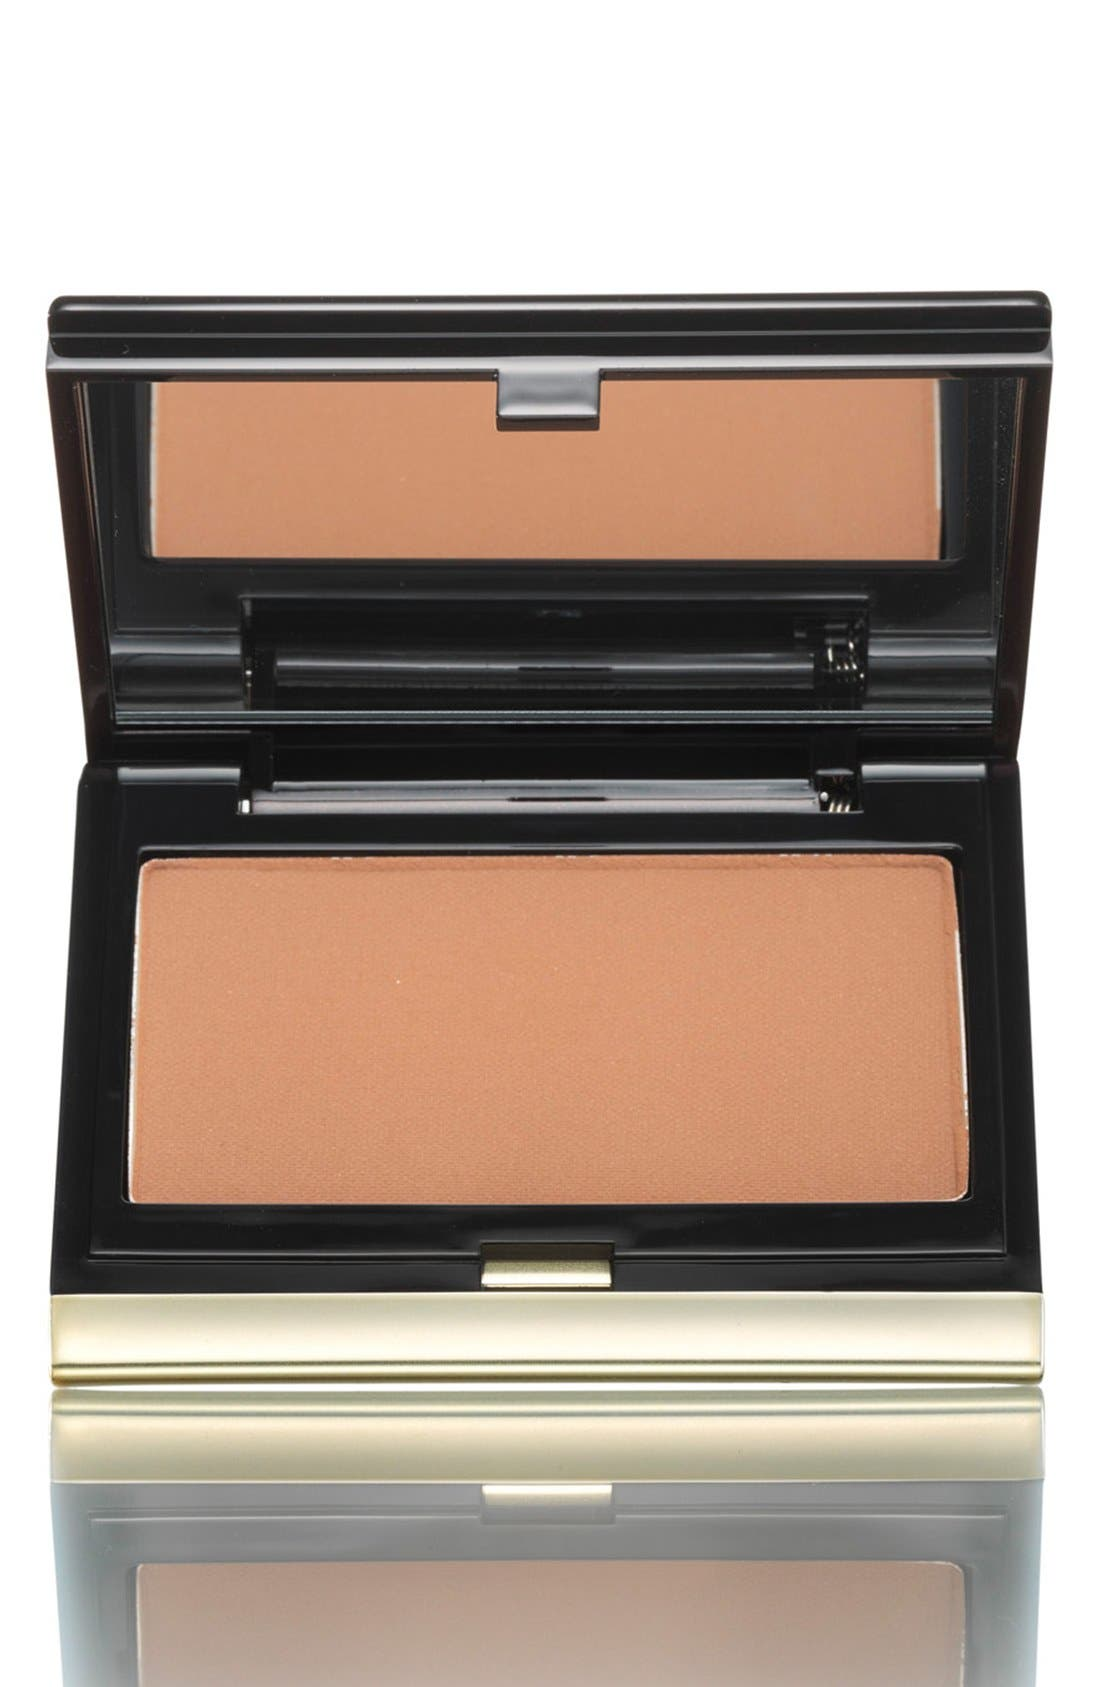 SPACE.NK.apothecary Kevyn Aucoin Beauty The Sculpting Powder,                             Main thumbnail 1, color,                             200